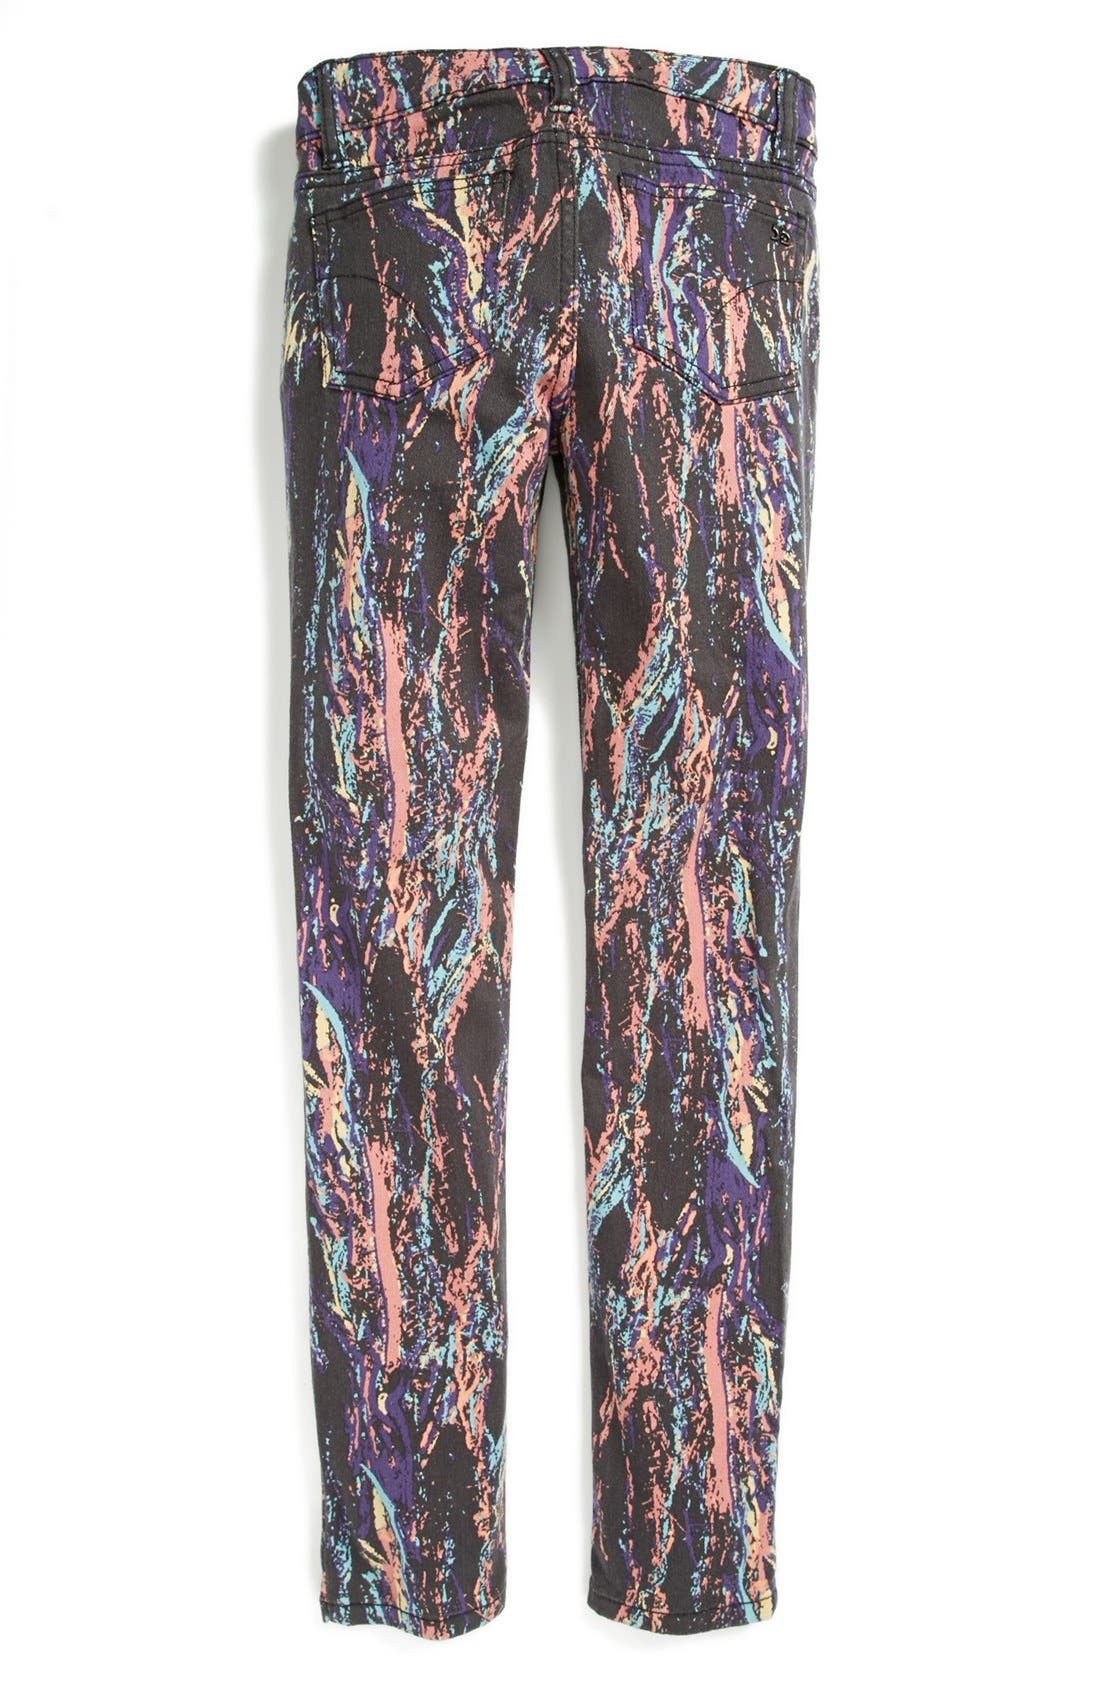 Alternate Image 1 Selected - Joe's 'Paint Splatter' Jeggings (Big Girls)